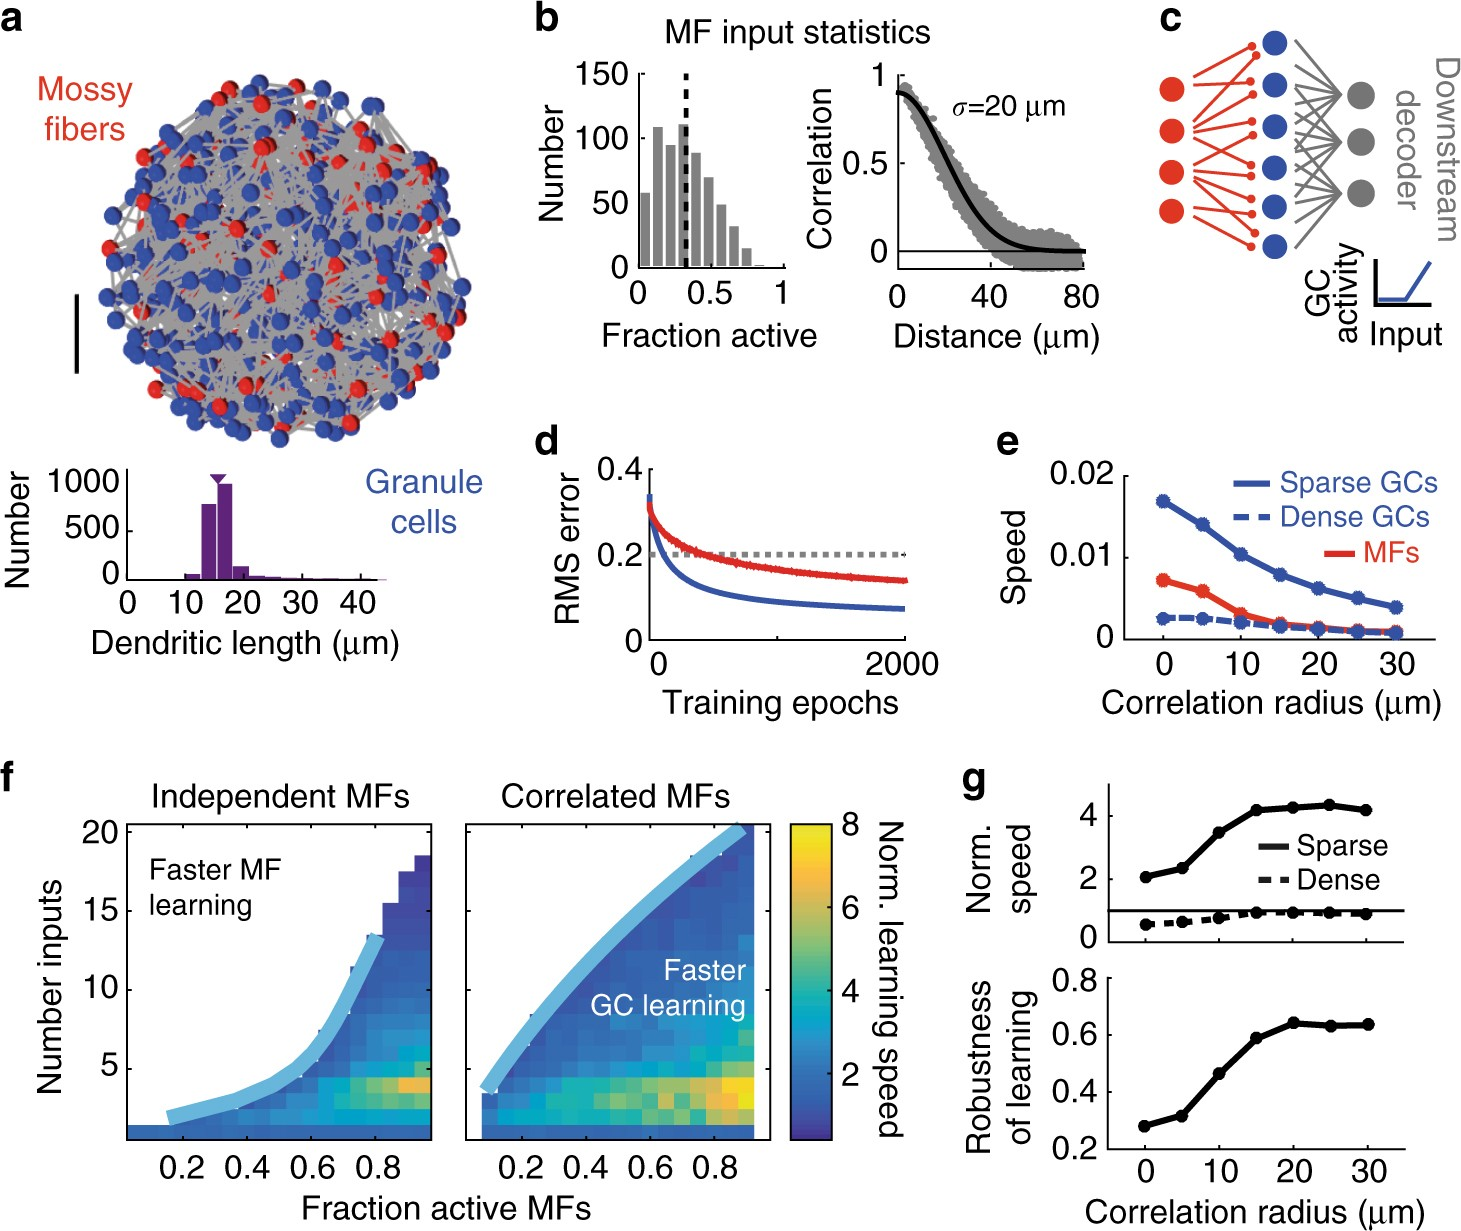 Sparse synaptic connectivity is required for decorrelation